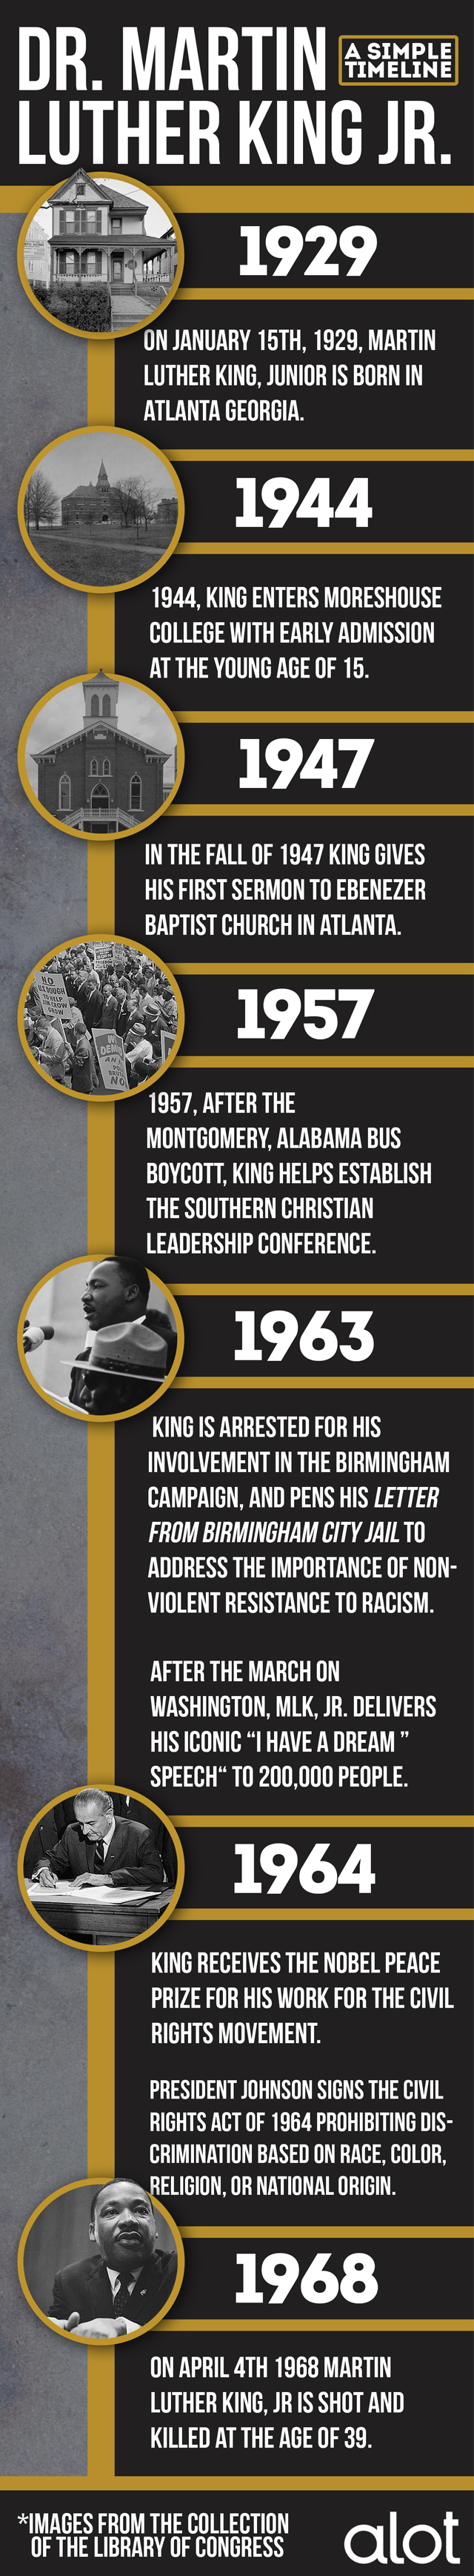 Luther King, Junior: A Timeline